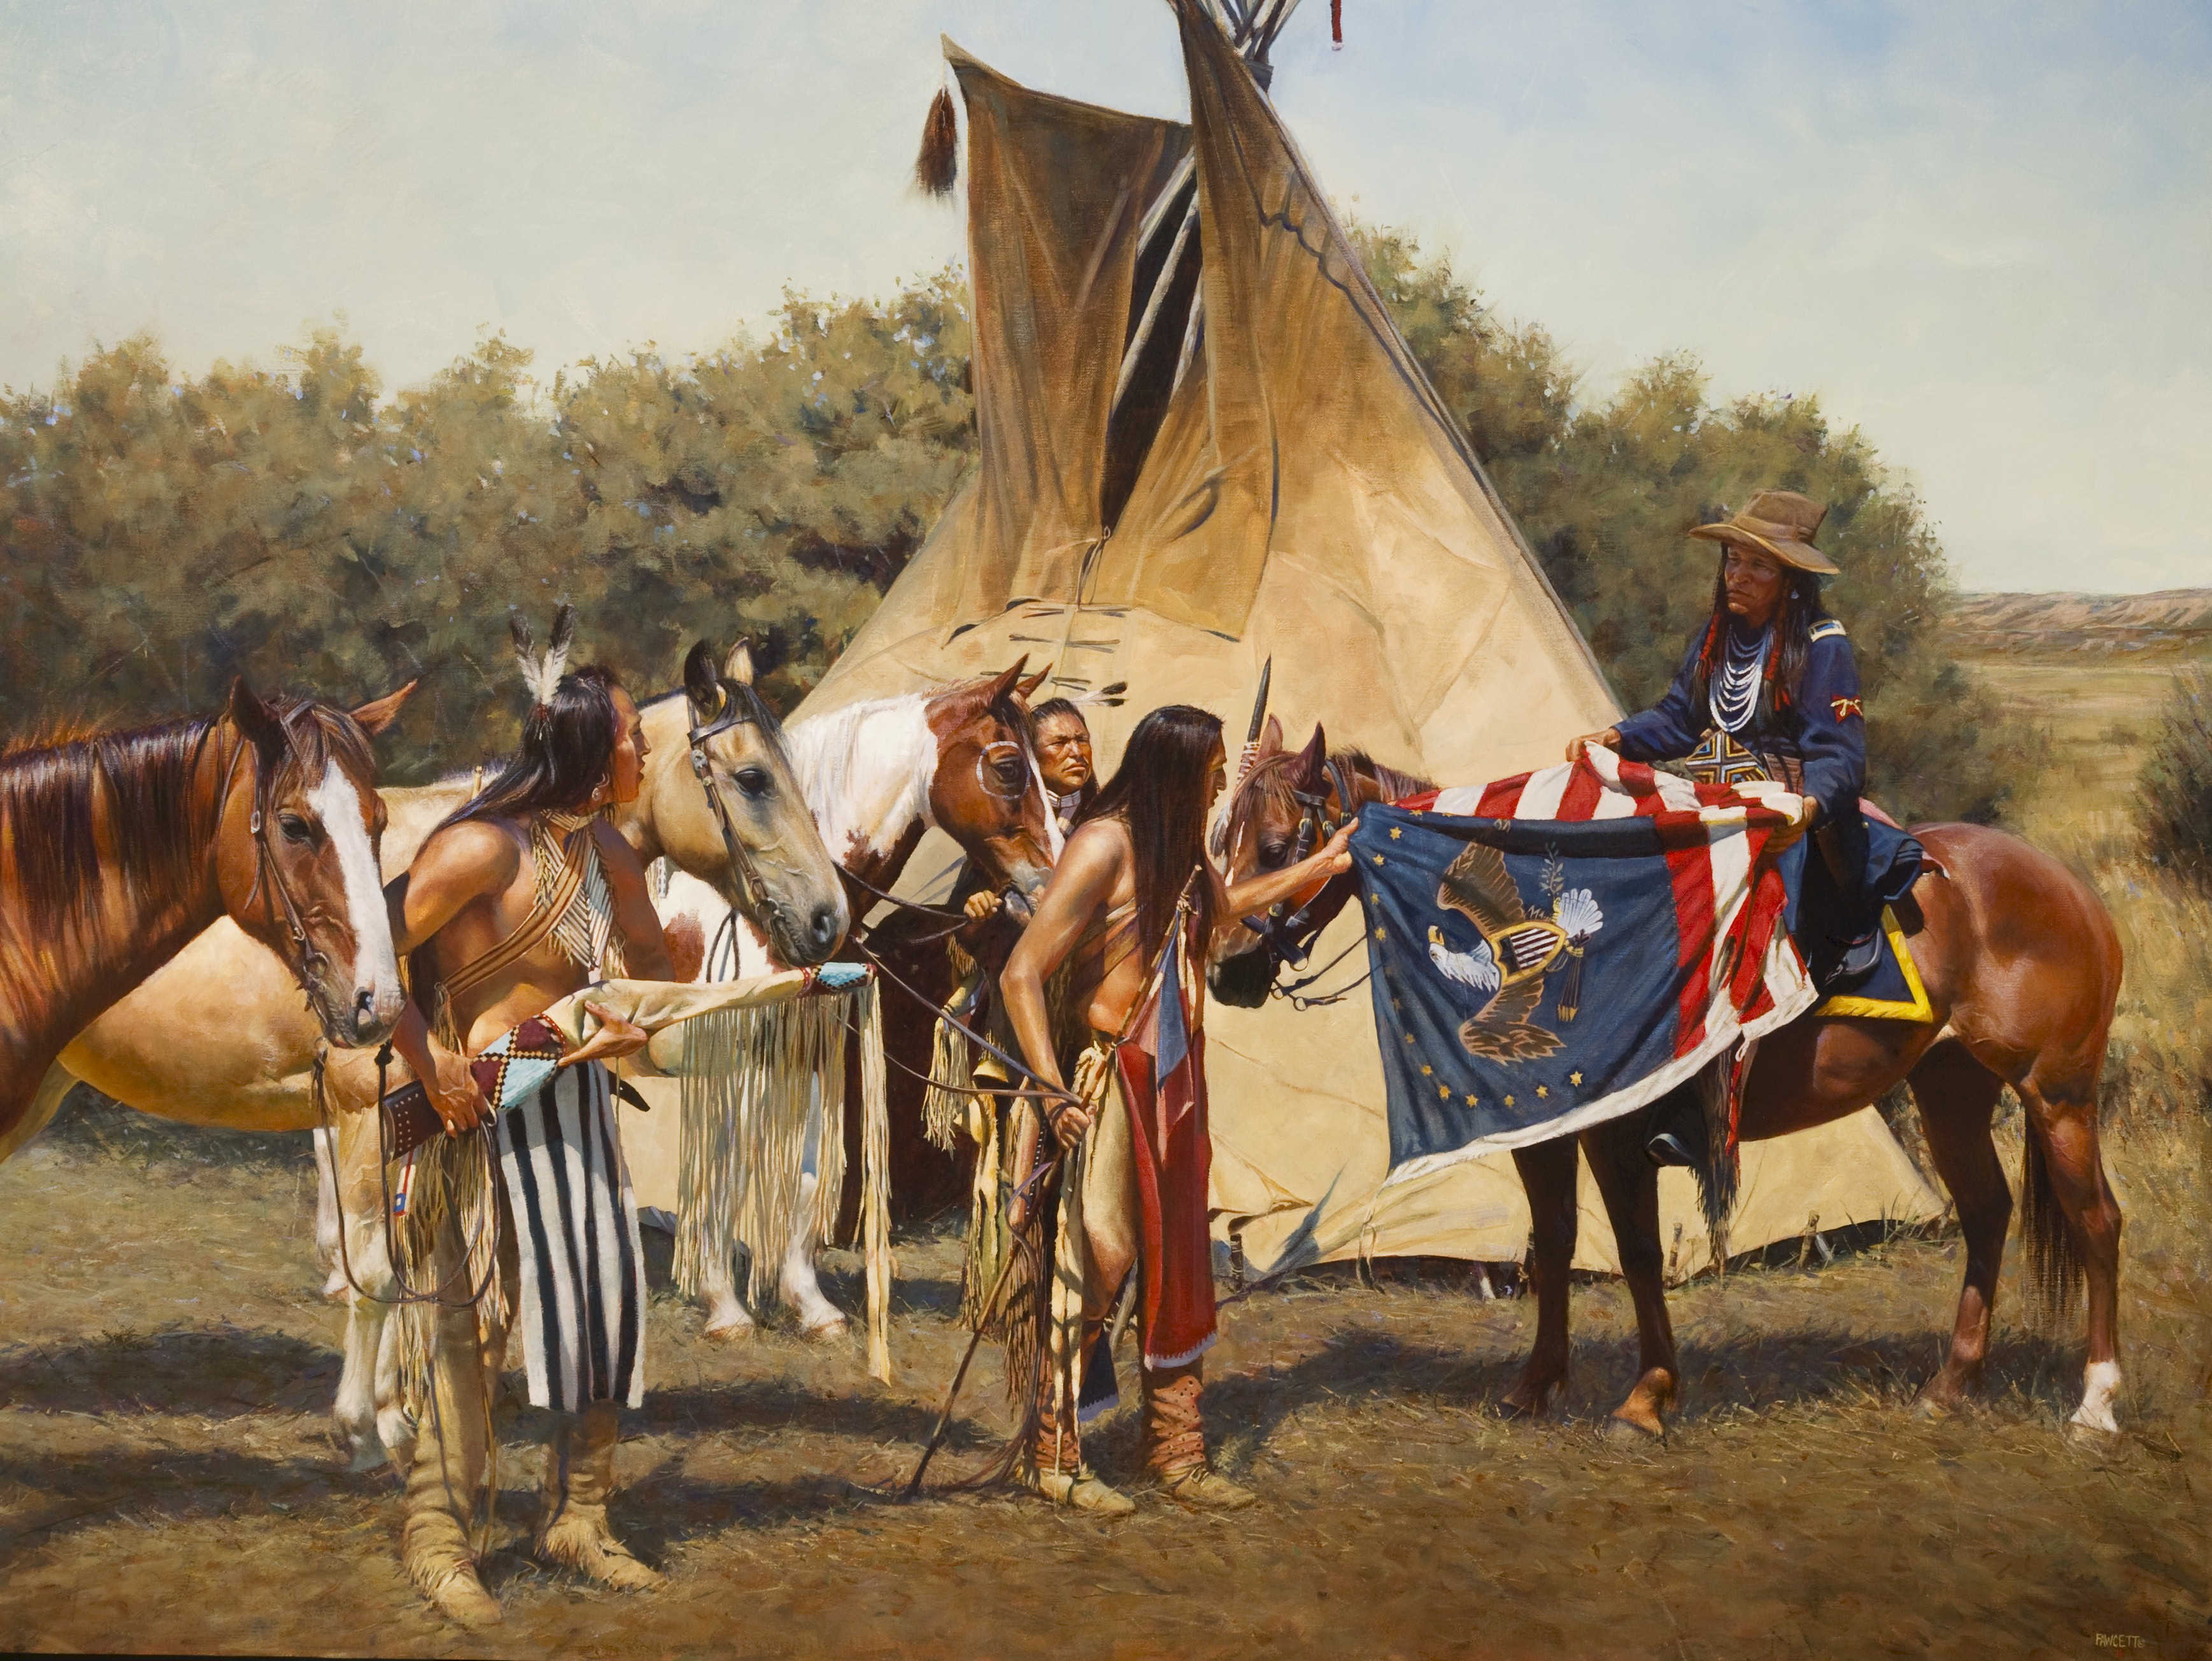 Indian Chief Dance at Crazy Horse Monument 1 of 2